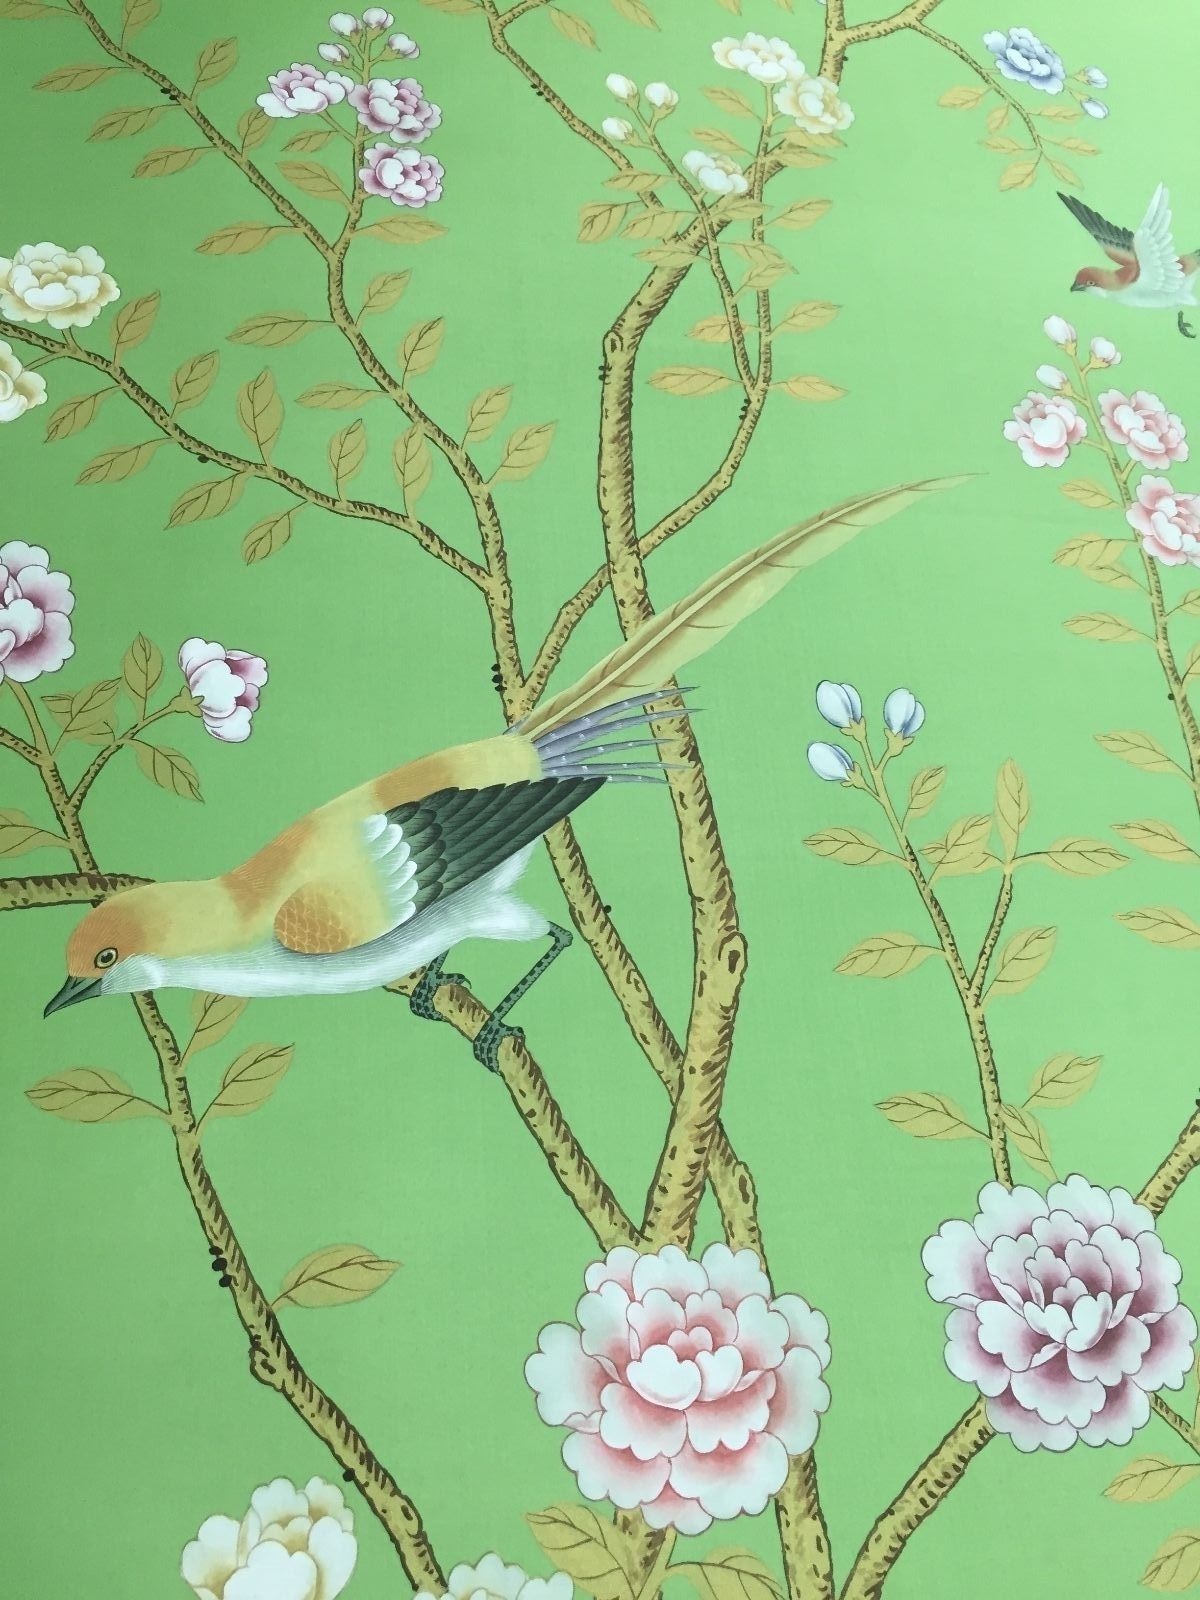 Hand Painted Wallpaper Details Of Design Earlham Chinoiserie Birds And Flowers On Green Wallpa In 2021 Chinoiserie Wallpaper Hand Painted Wallpaper Handmade Wallpaper